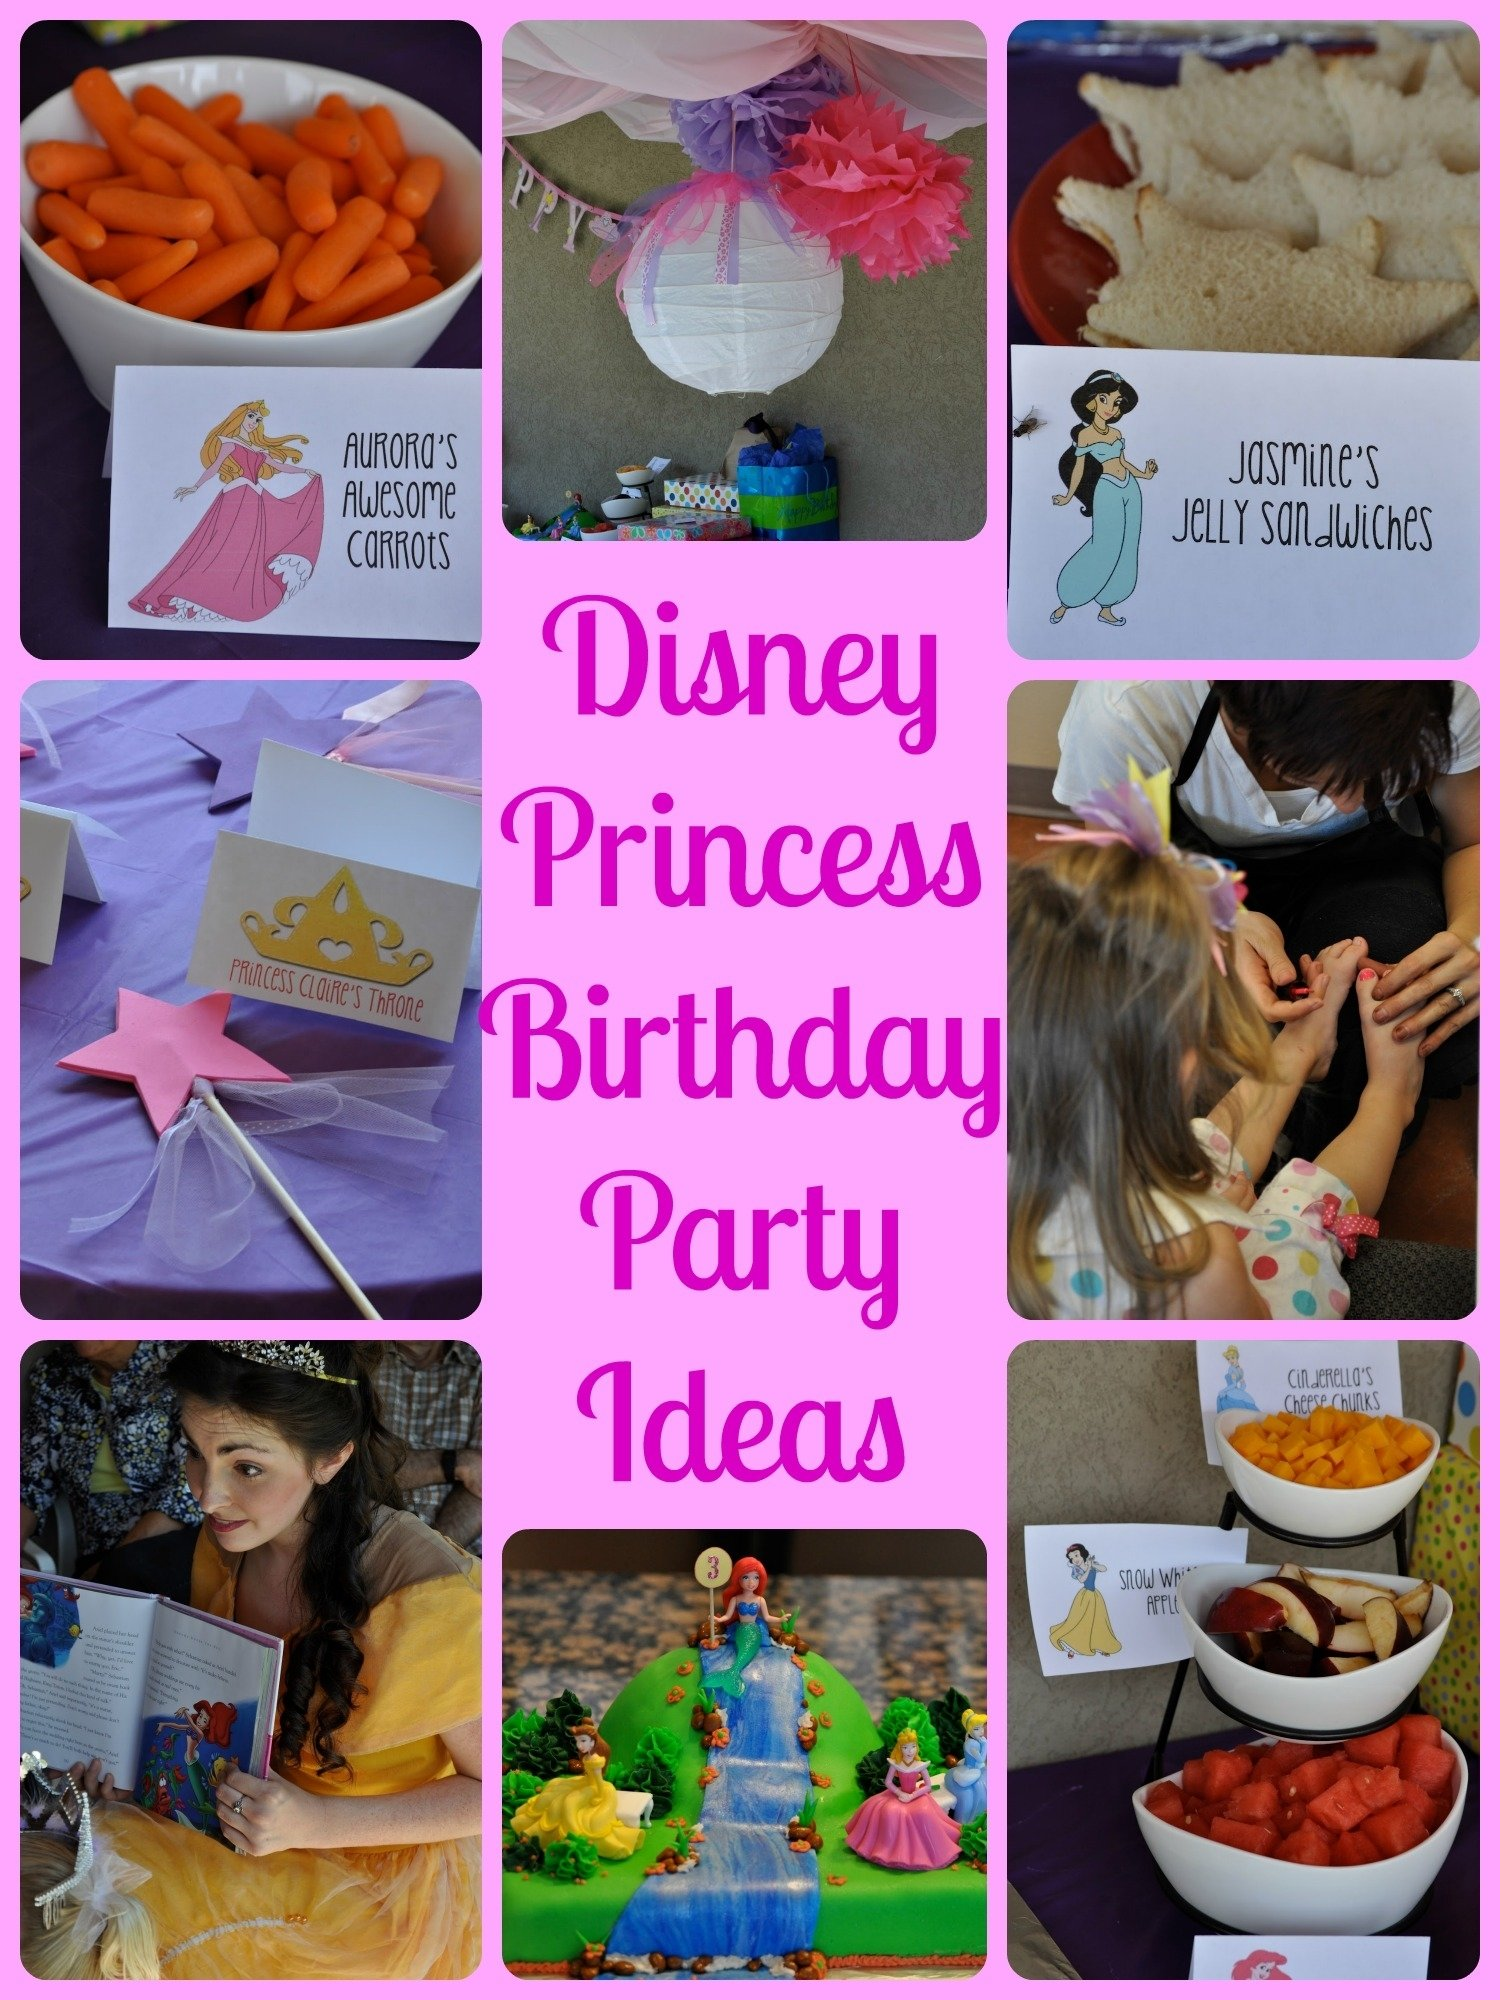 10 Attractive Disney Princess Party Food Ideas disney princess birthday party events to celebrate 2020